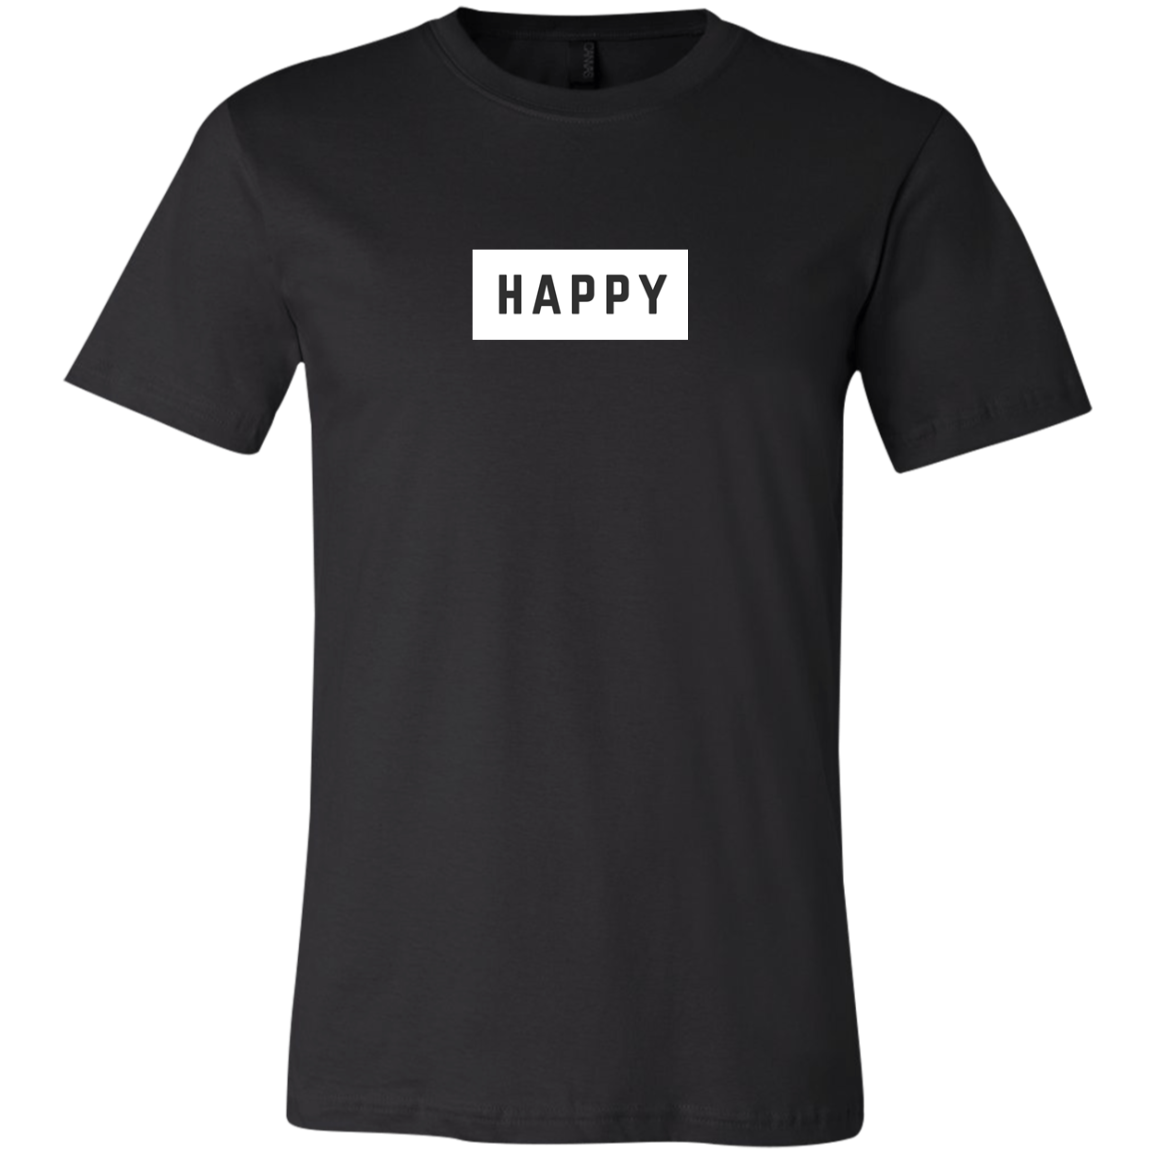 Happy Black and White Unisex Jersey Short-Sleeve T-Shirt